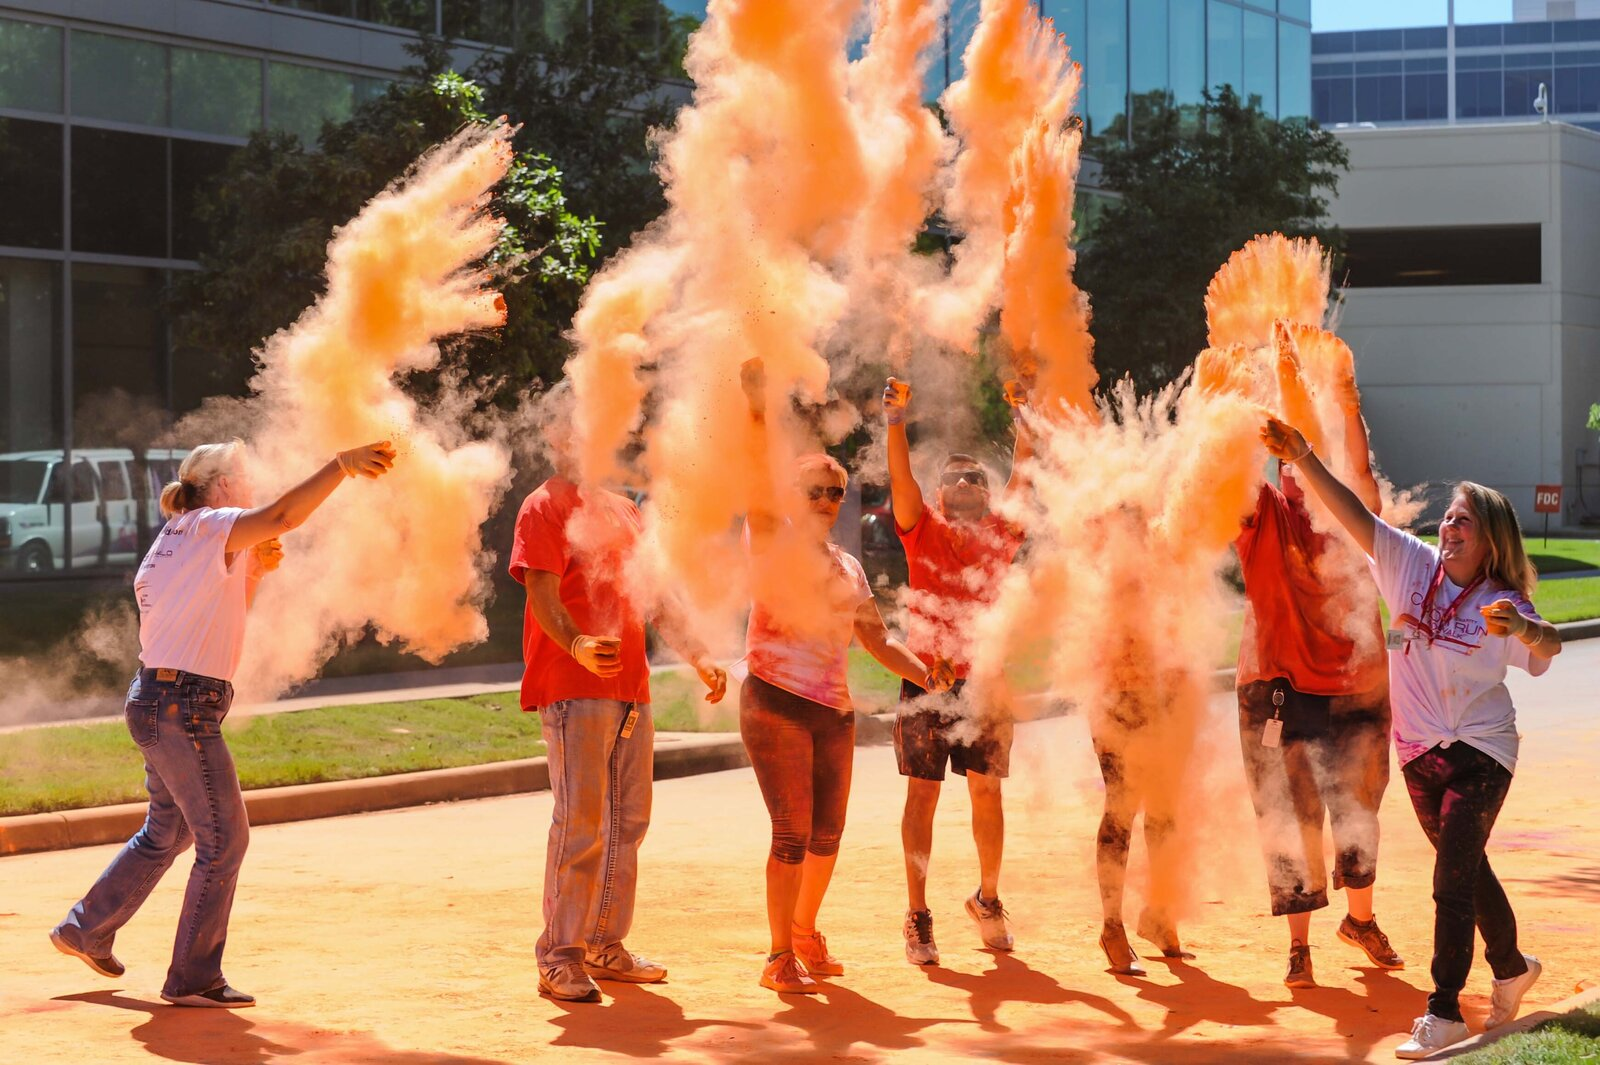 Halliburton employees raise funds for MD Anderson Cancer Center, St. Jude's Children's Research Hospital and Camp Quality during color run event.